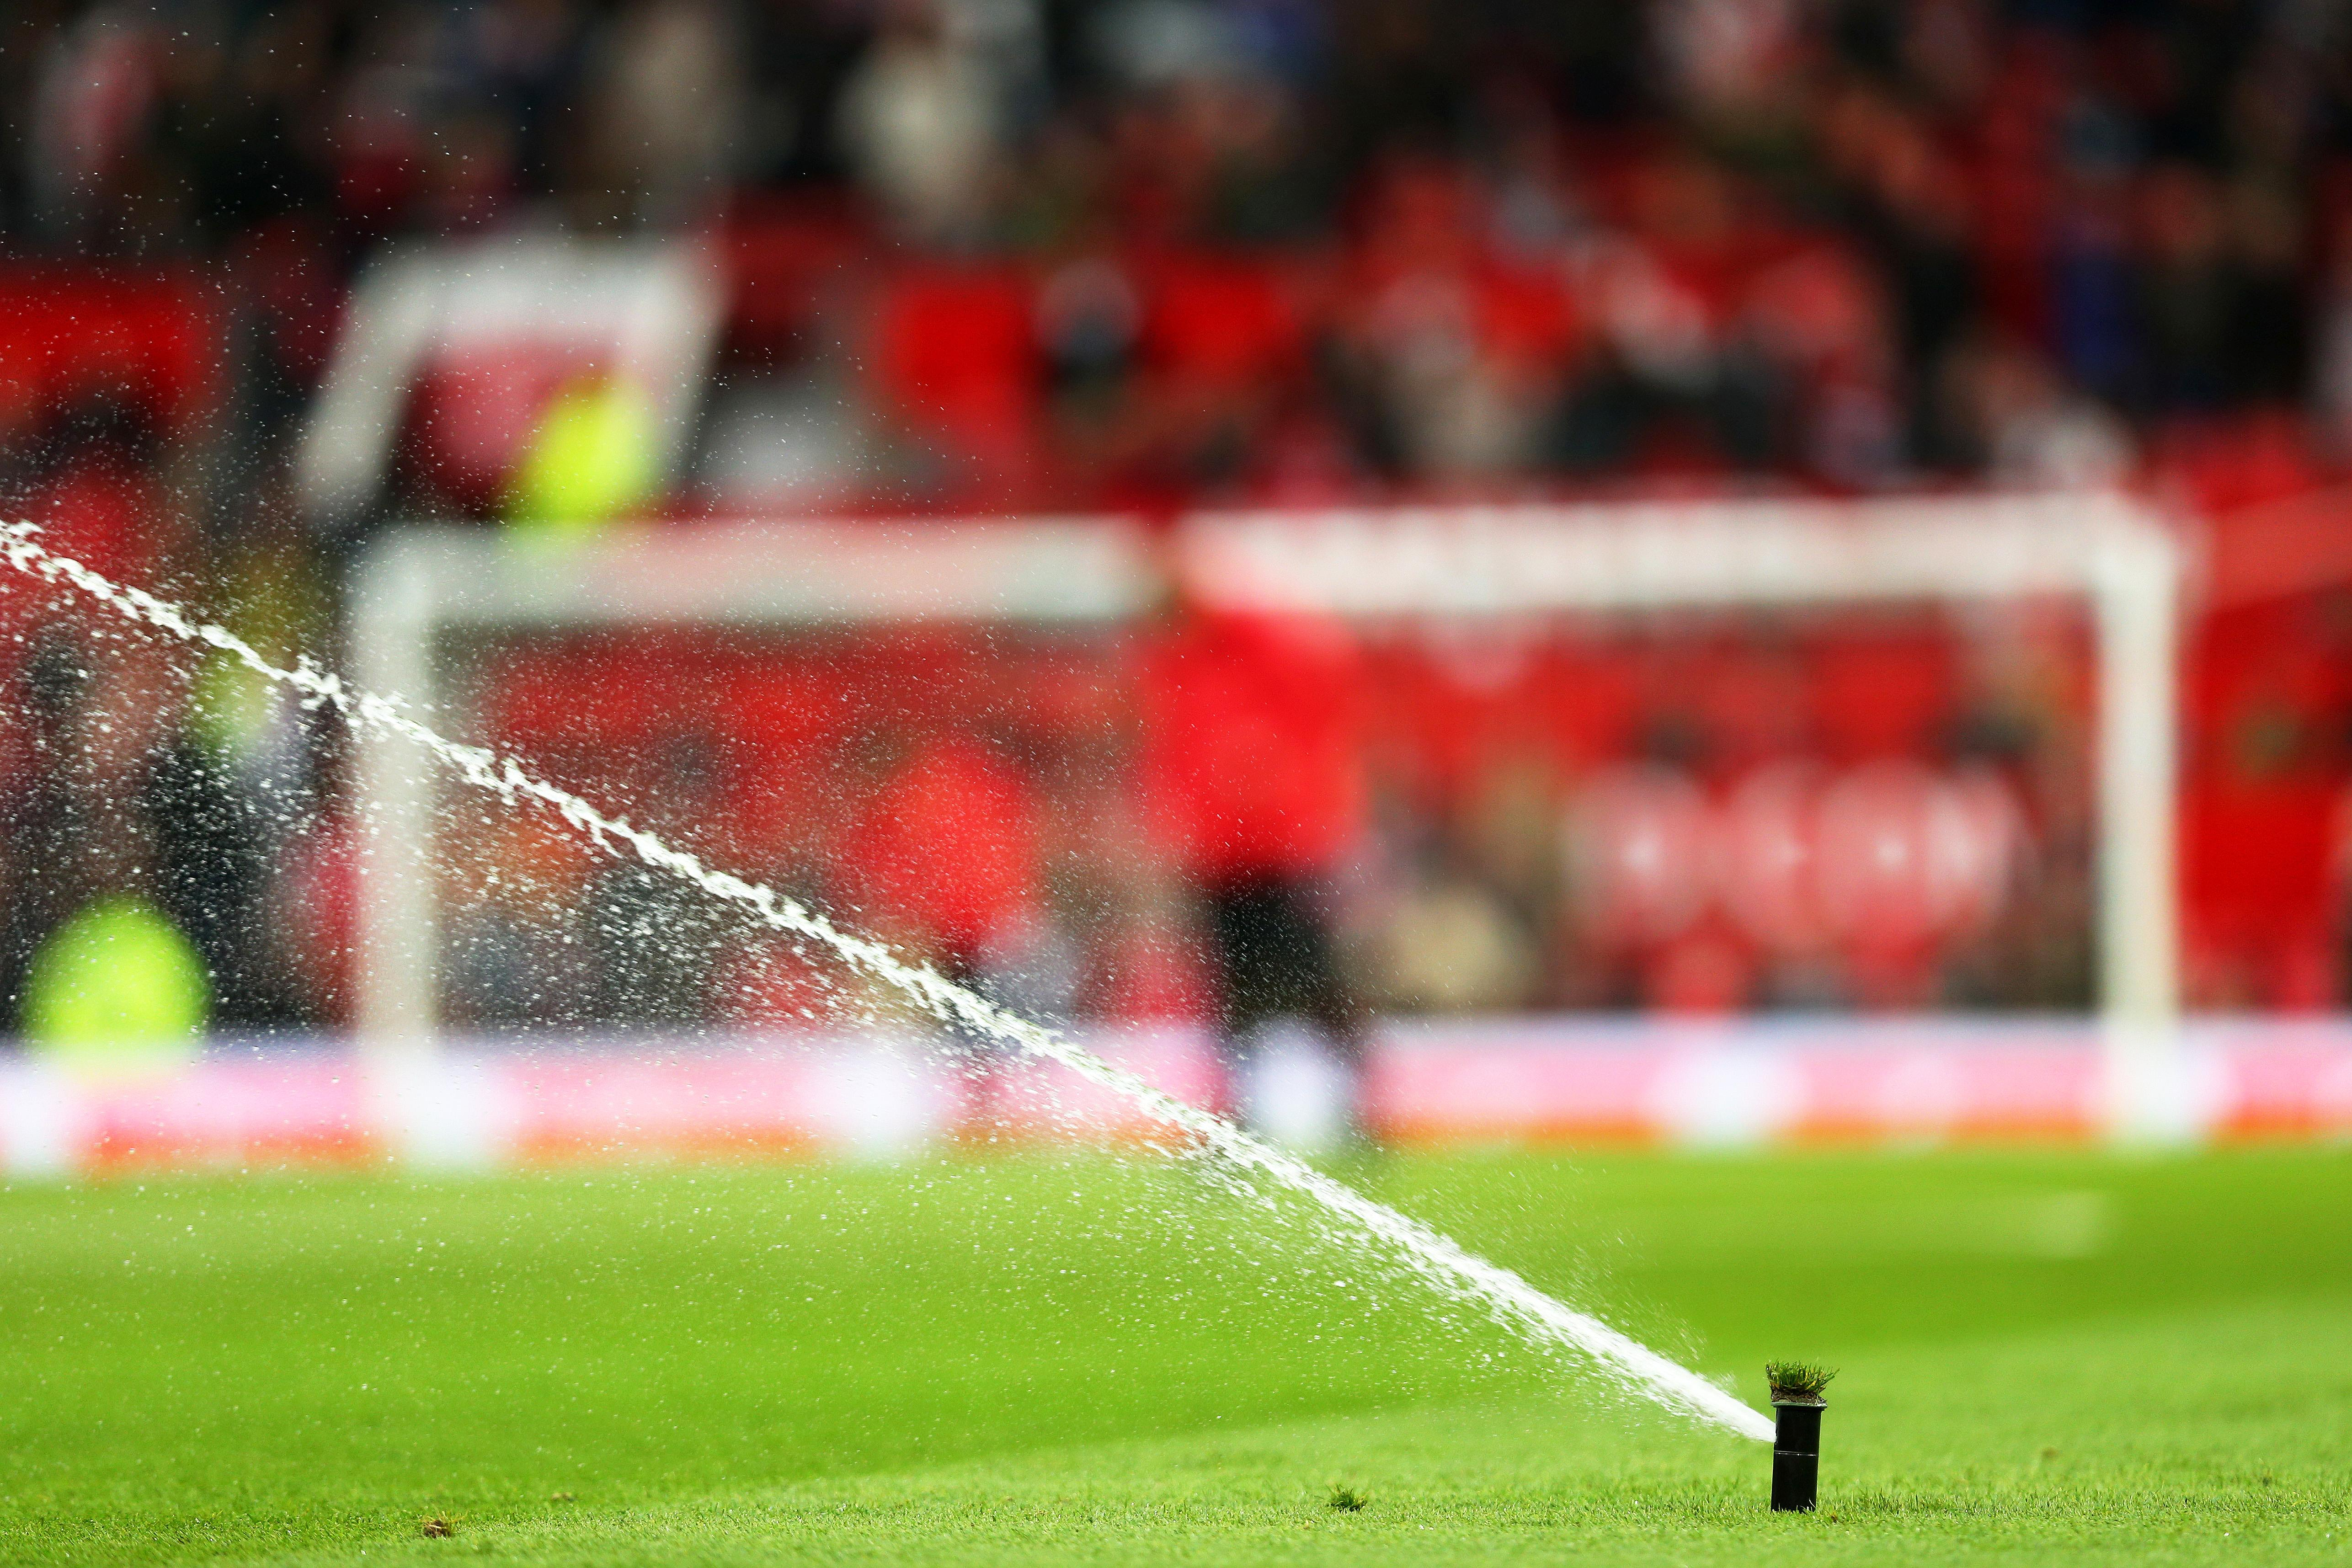 Kettering Town have used 30,000 litres of water to try and make the pitch safe